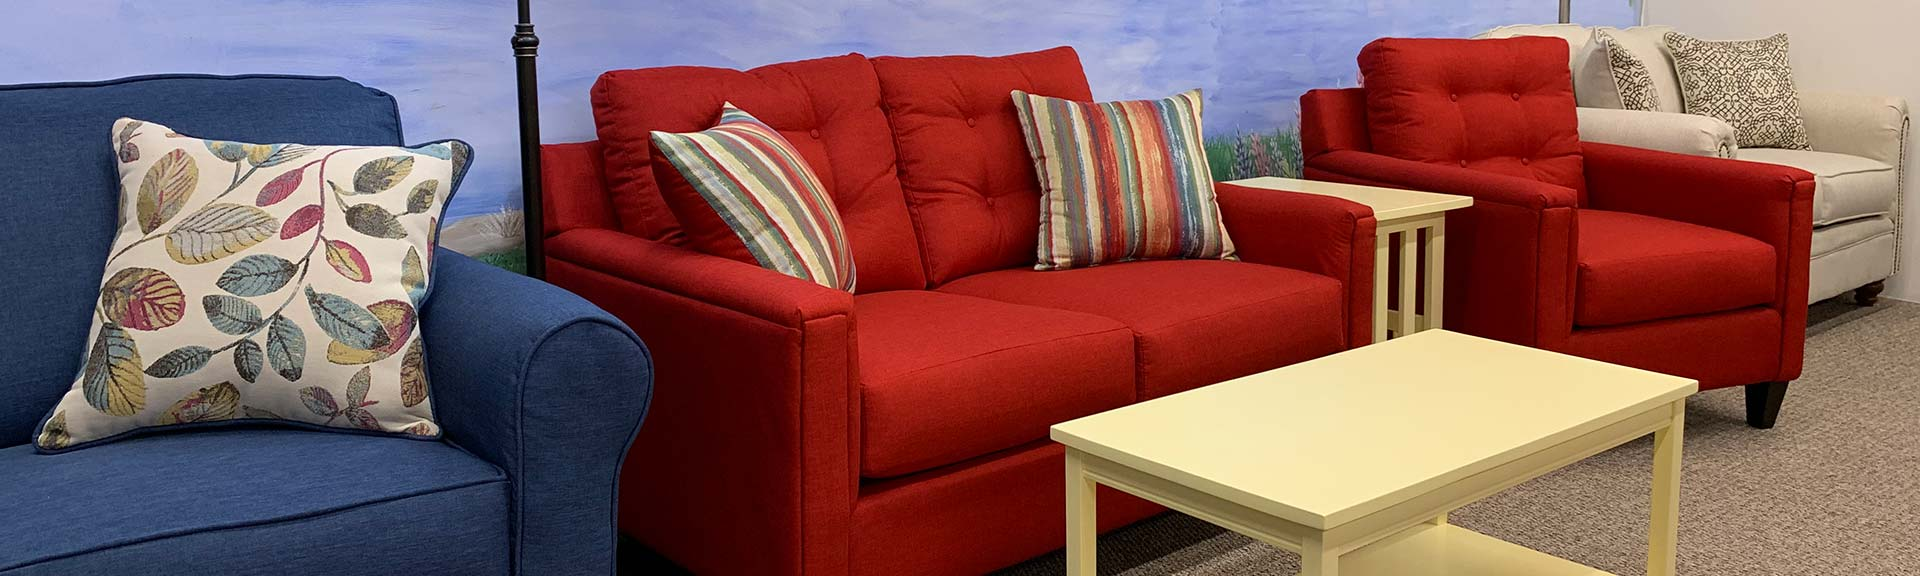 Find Me A Furniture Store Maine Furniture Store Offering Living Room Furniture Dining Room